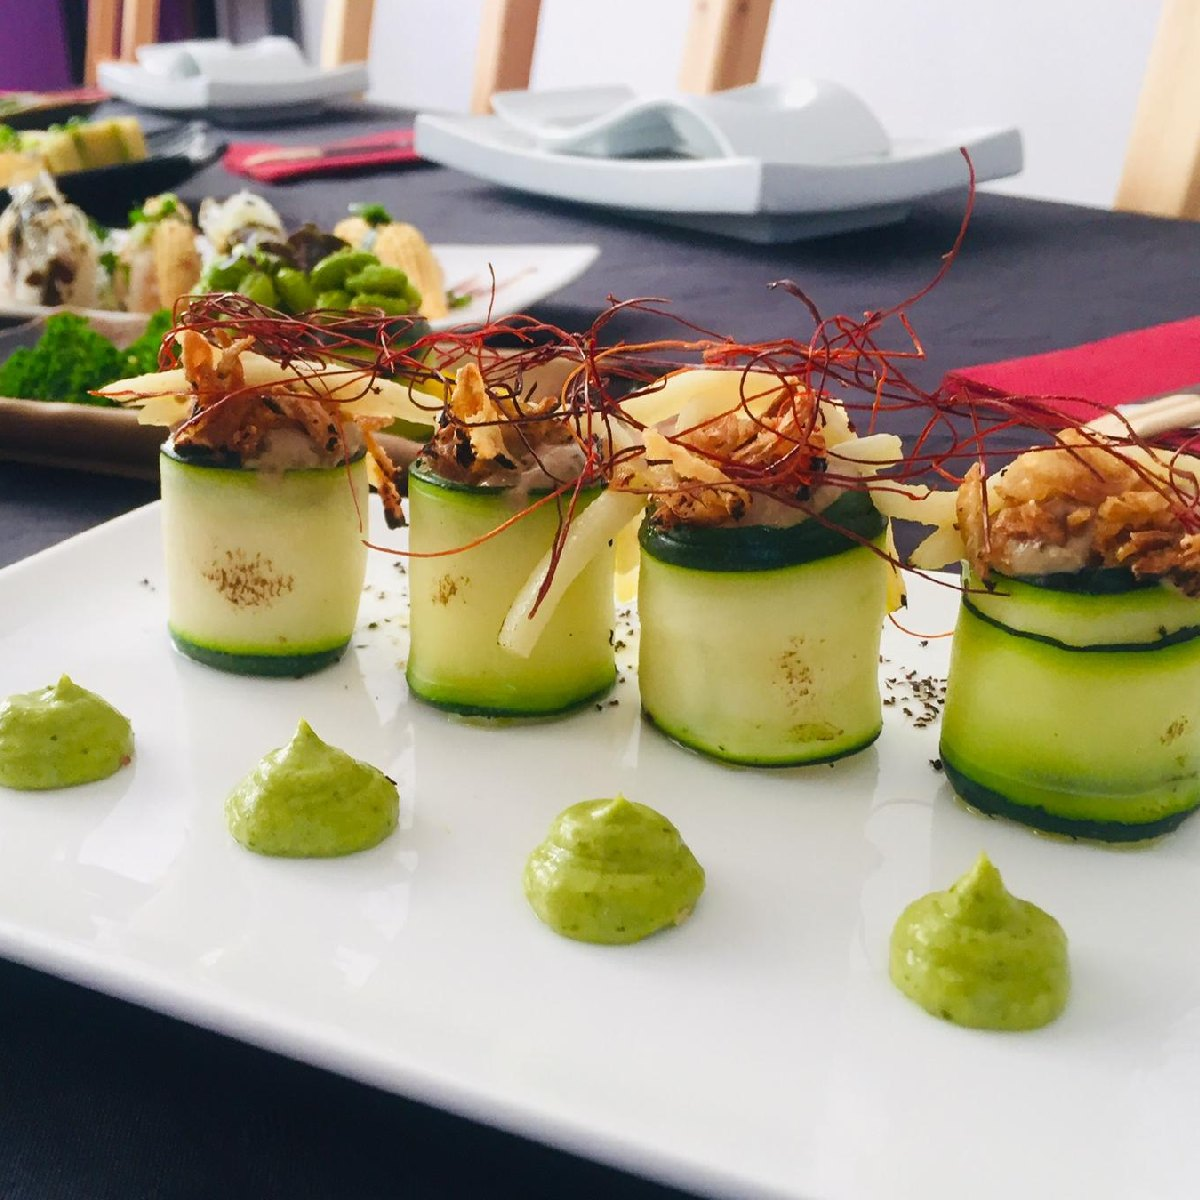 """Courgette rolls with spicy jackfruit (""""tuna"""" paste type) by Legumi Sushi"""